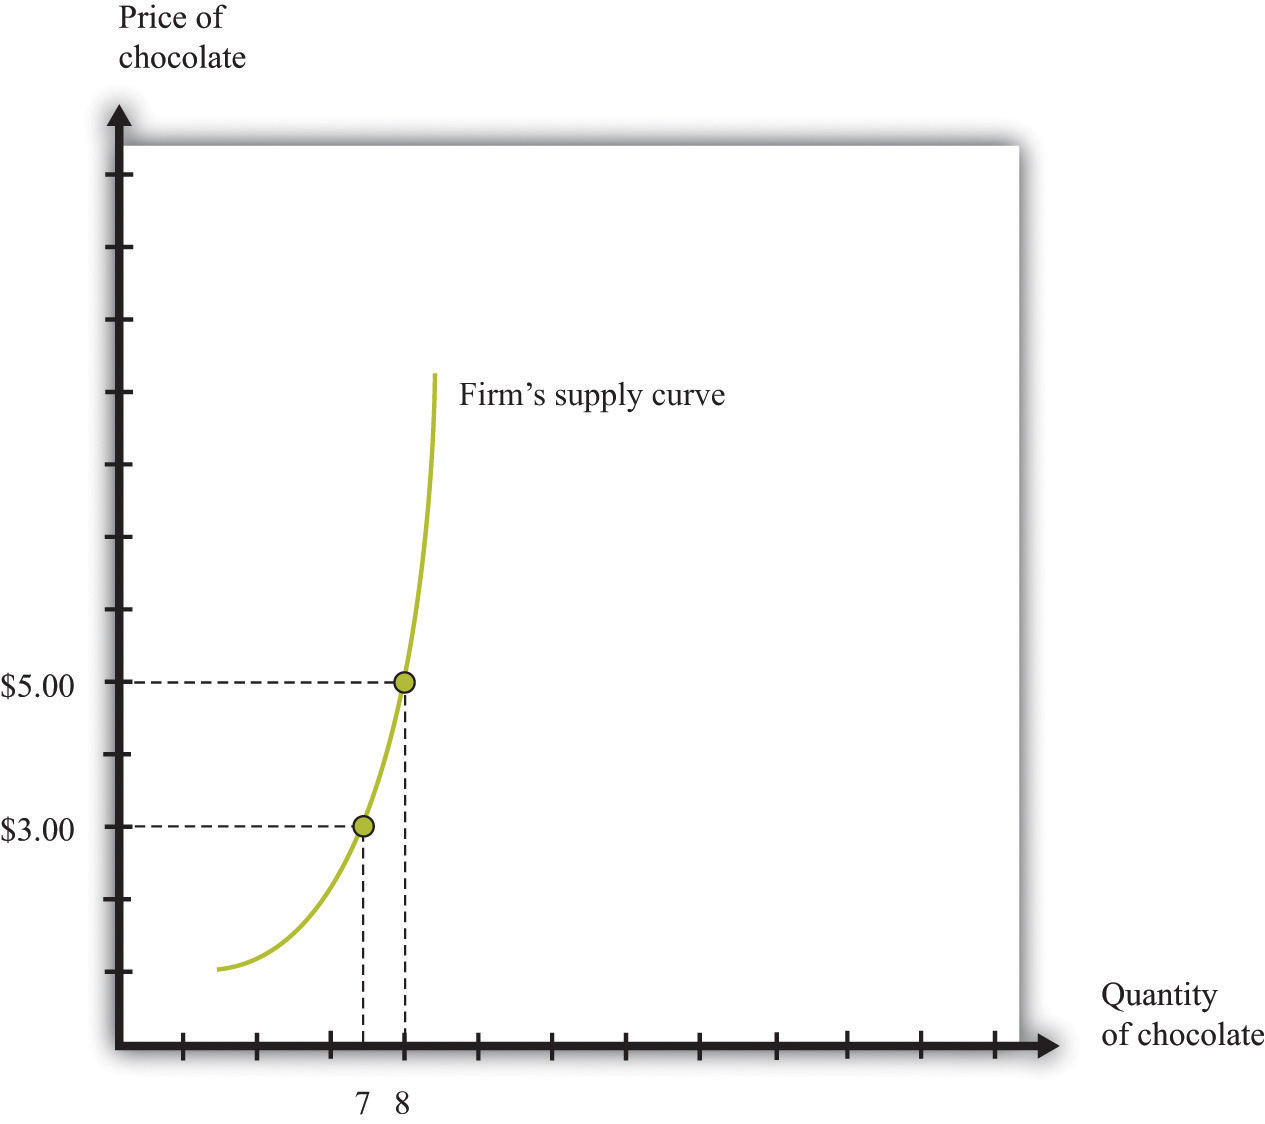 Figure 8.3 The Supply Curve of